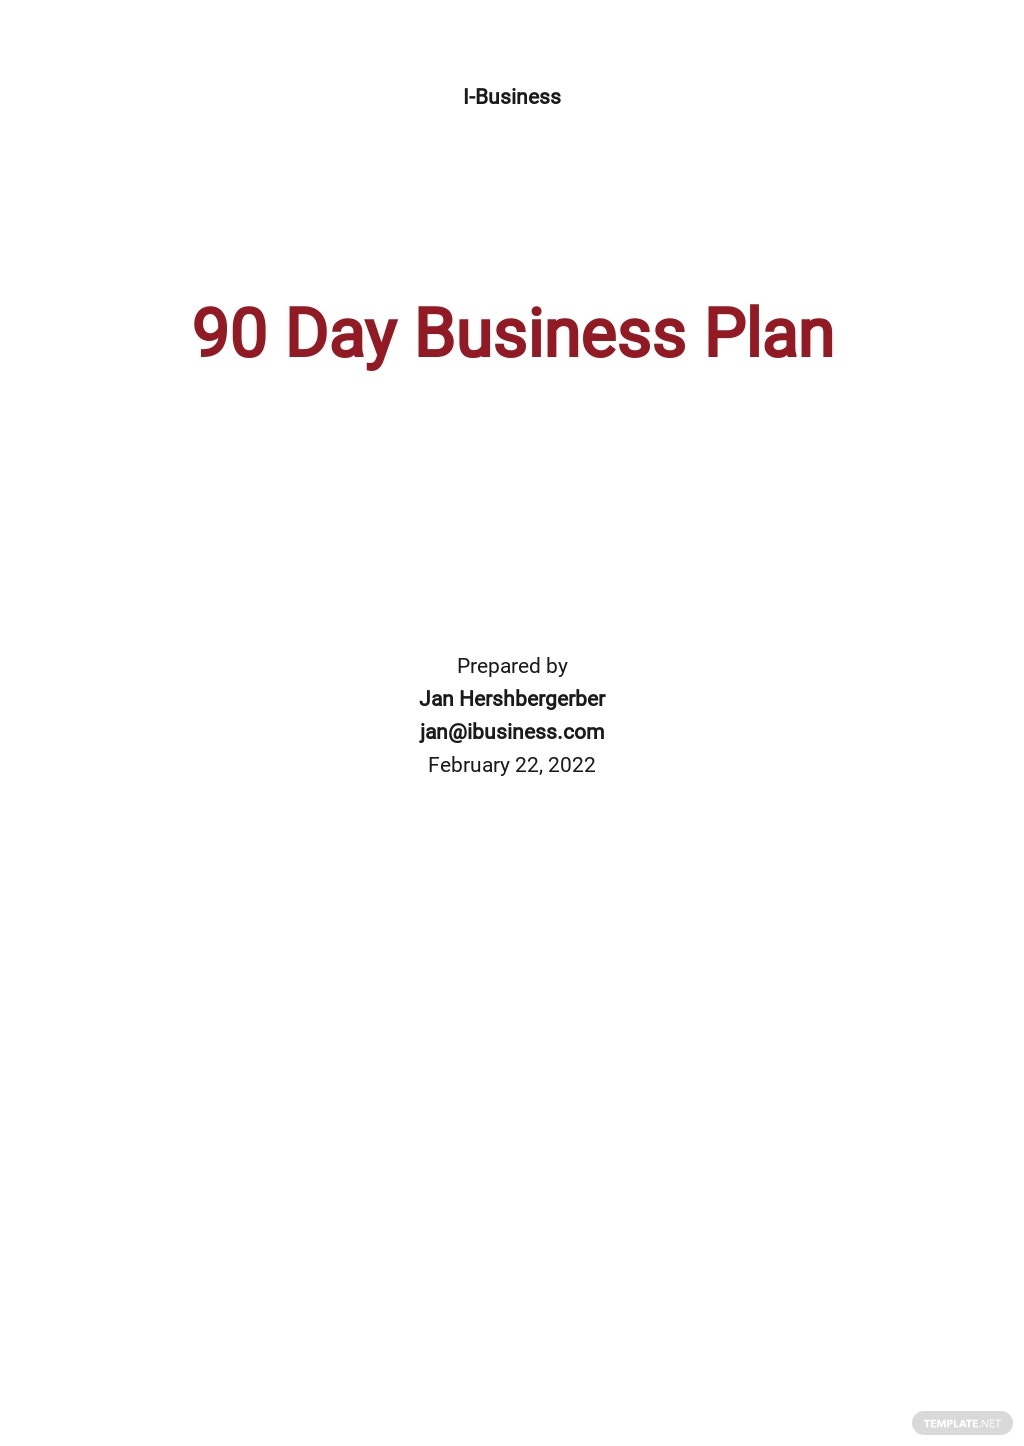 90 day Business Plan Template